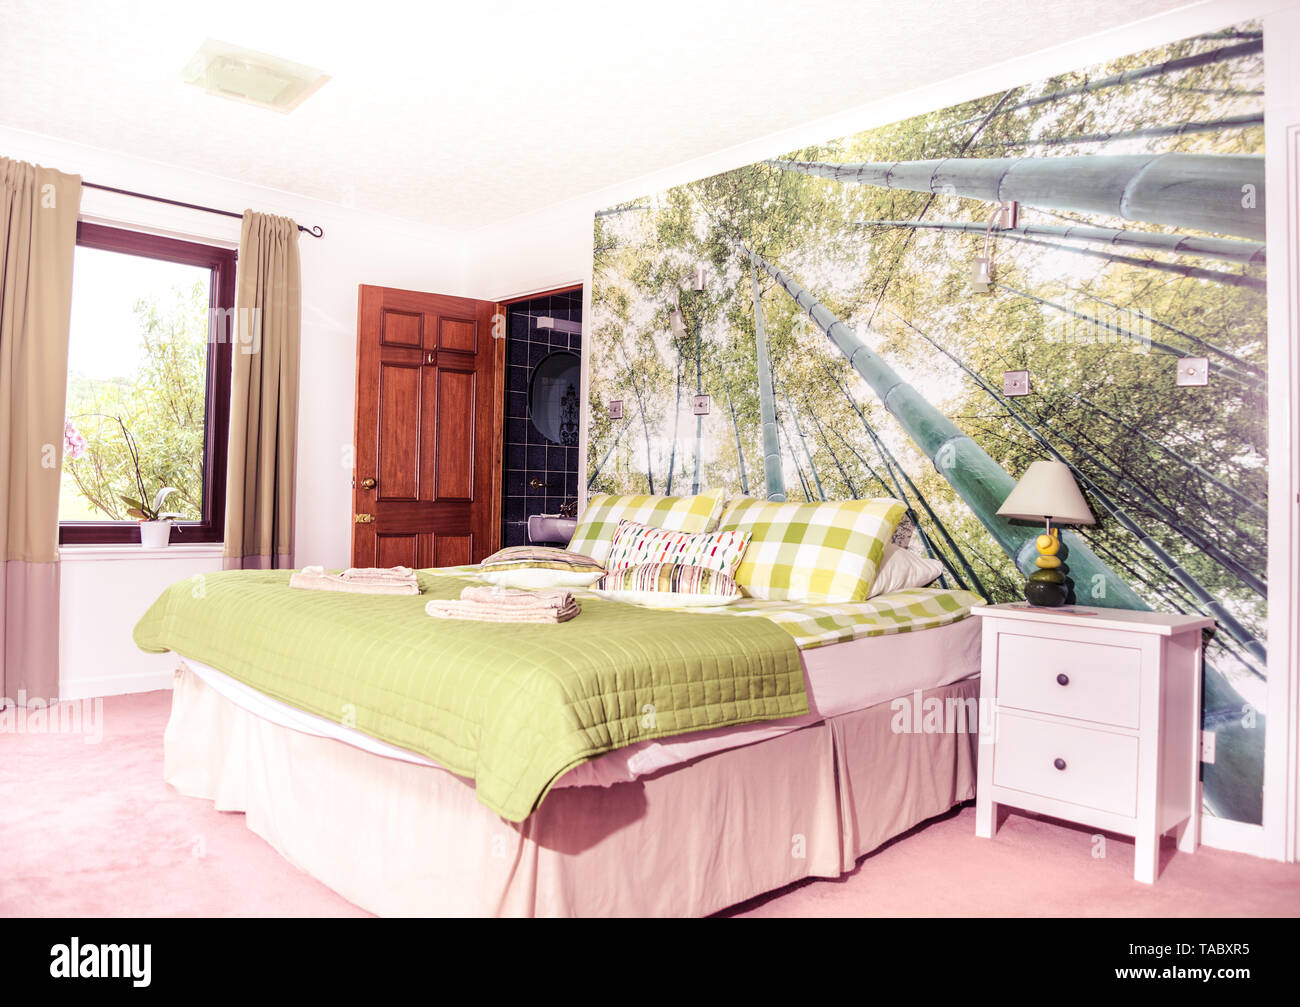 Tropical Forest Wallpaper In The Bedroom Stock Photo